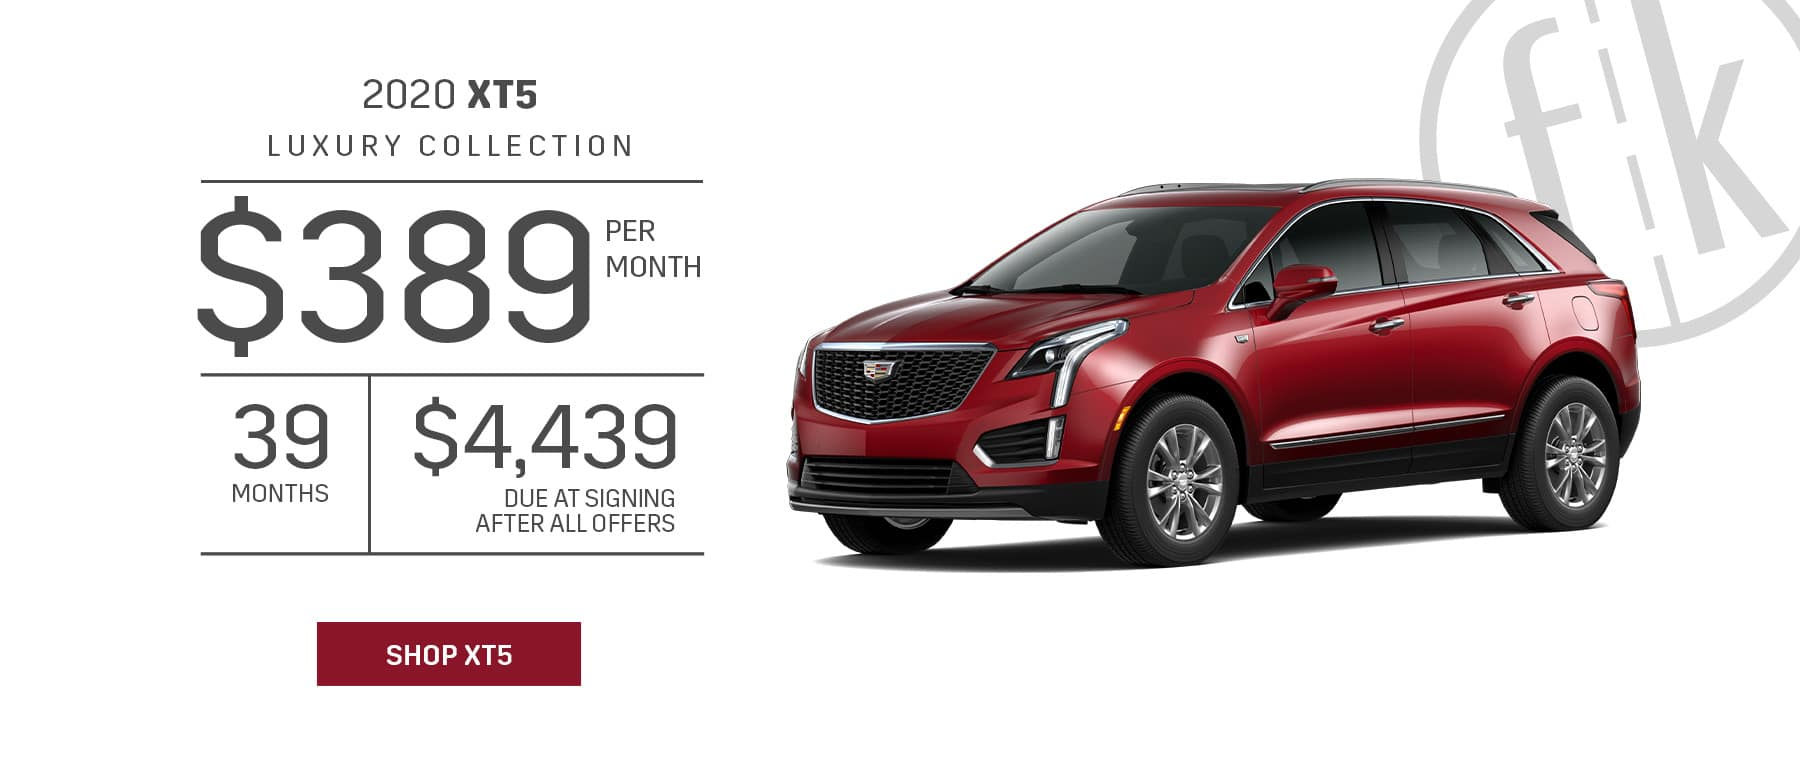 2020 XT5 FWD Luxury $389/mo for 39 mos. with $4,439 DAS